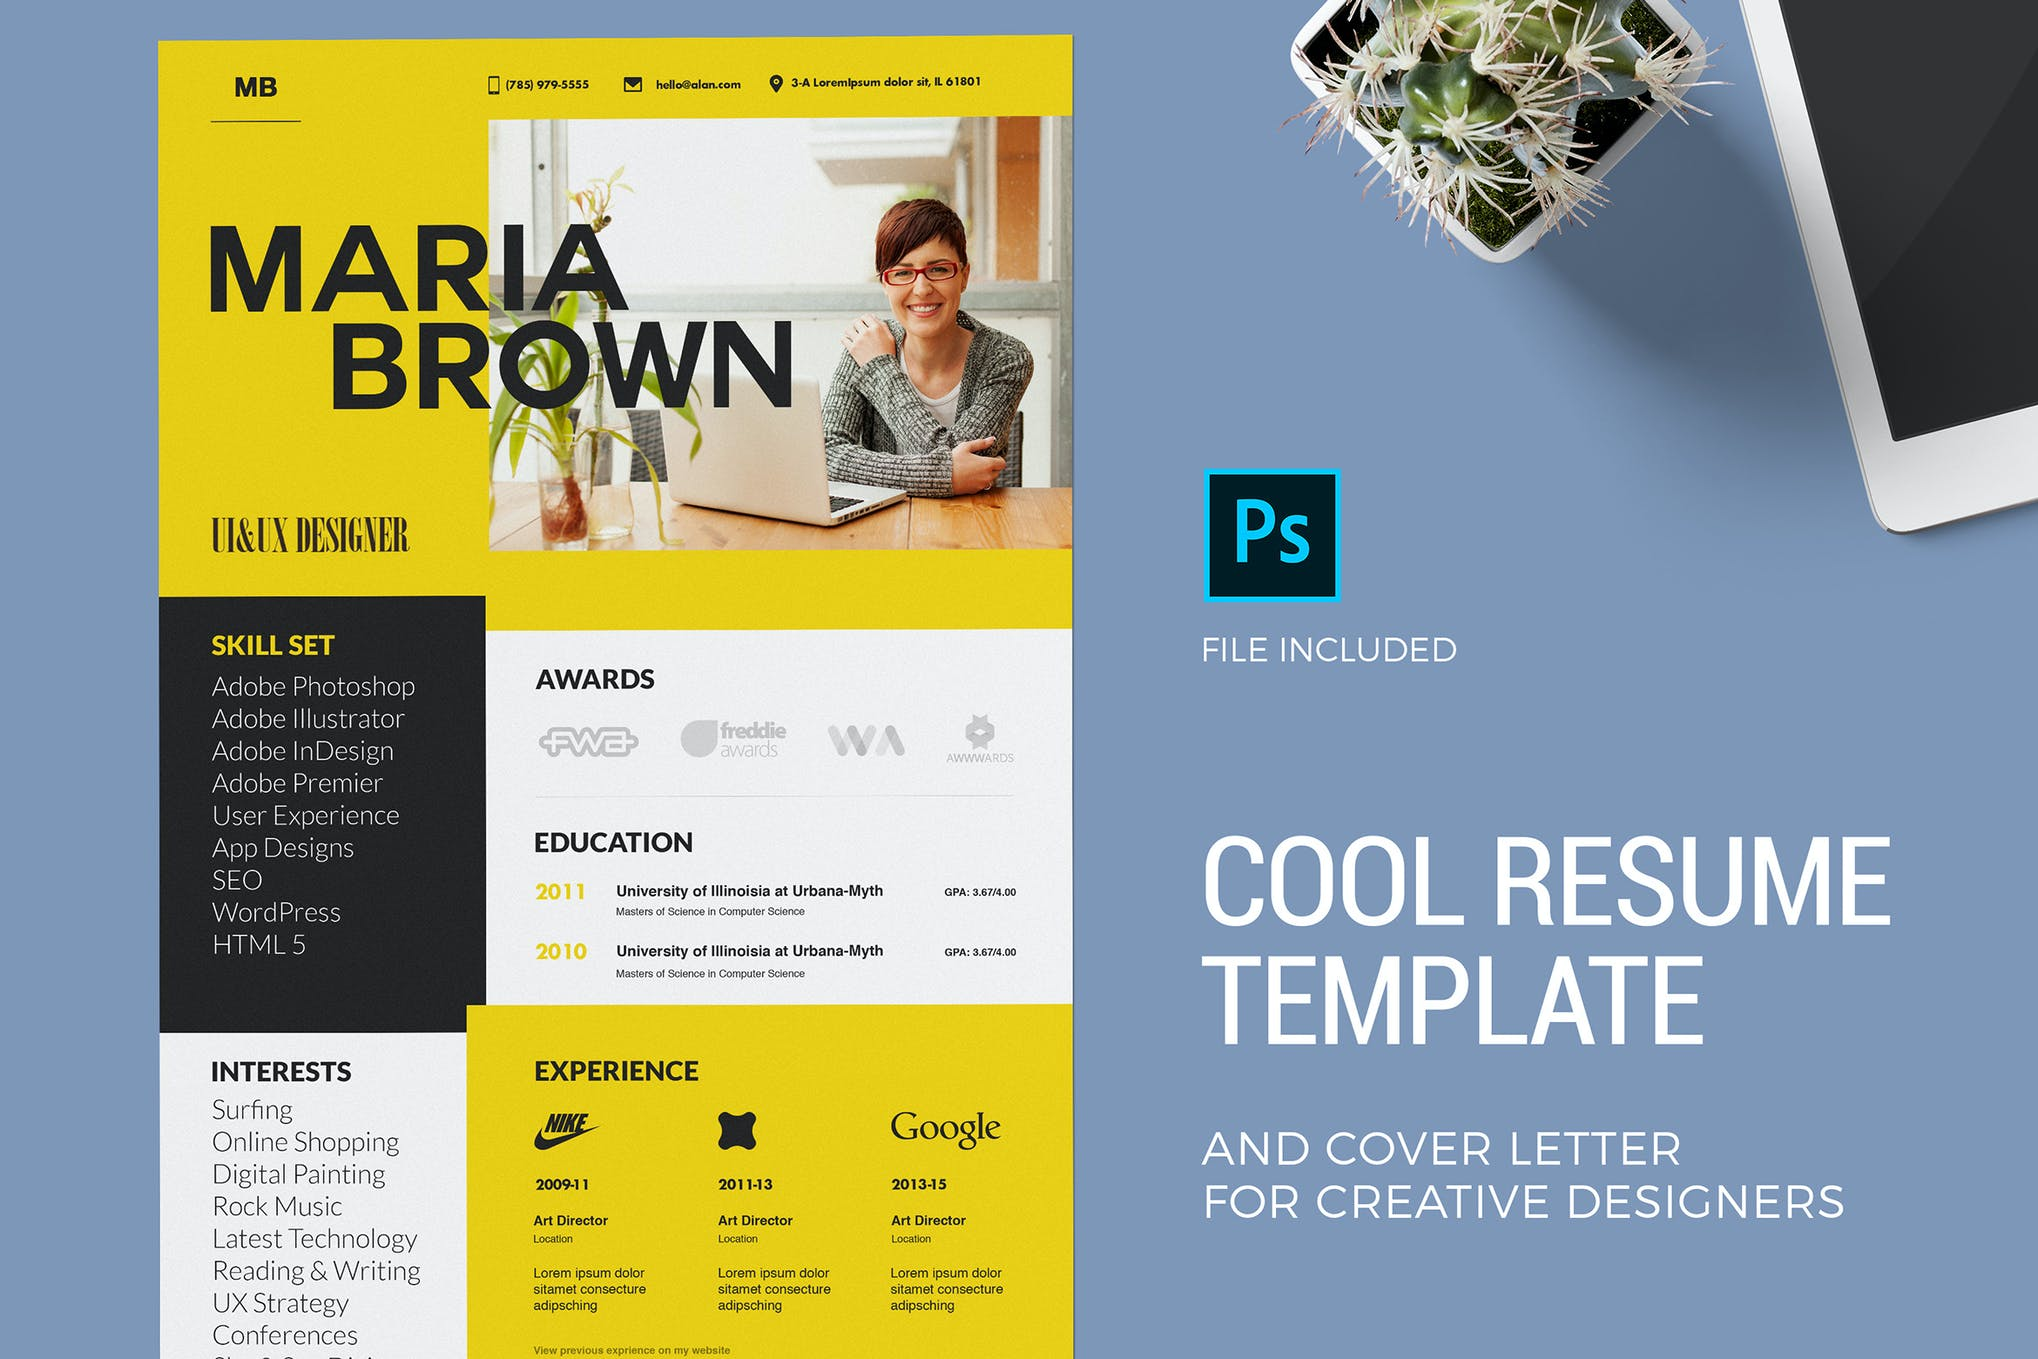 Cool Resume Template & Cover Letter by zippypixels on Envato ...